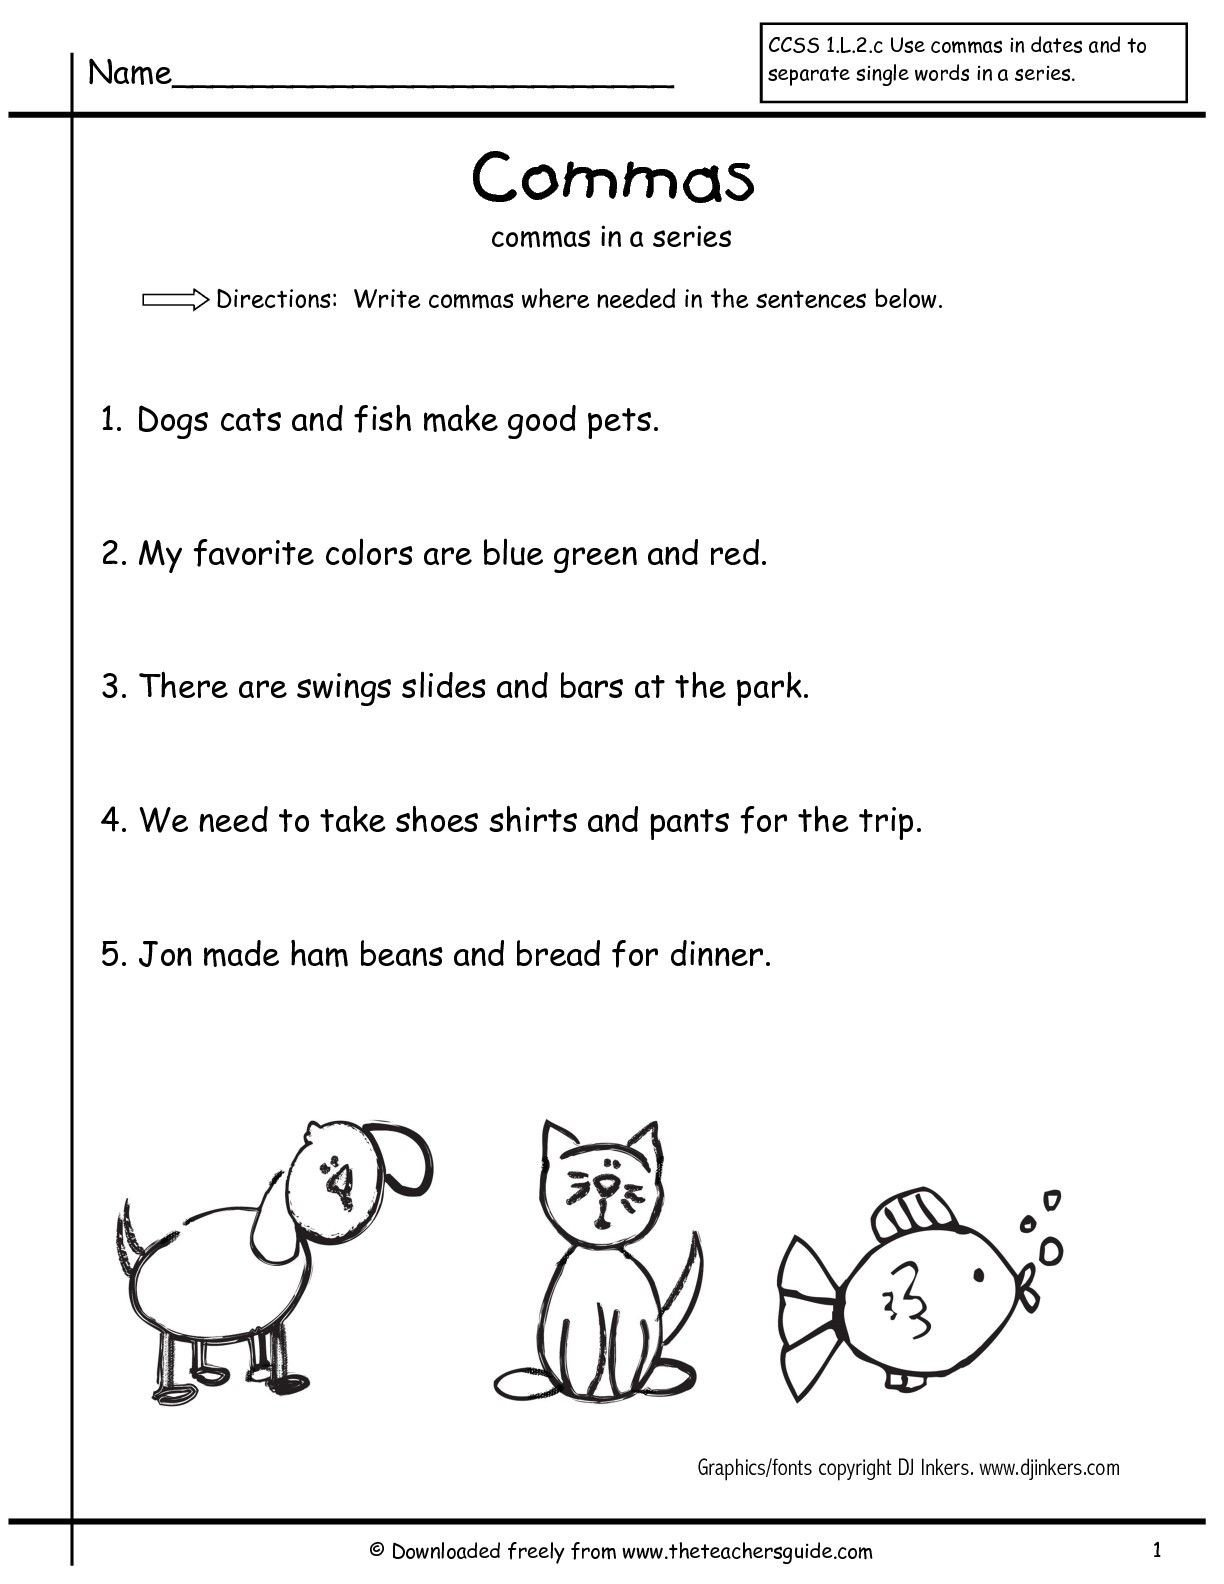 Commas Worksheet 4th Grade Wonders Second Grade Unit Two Week E Printouts